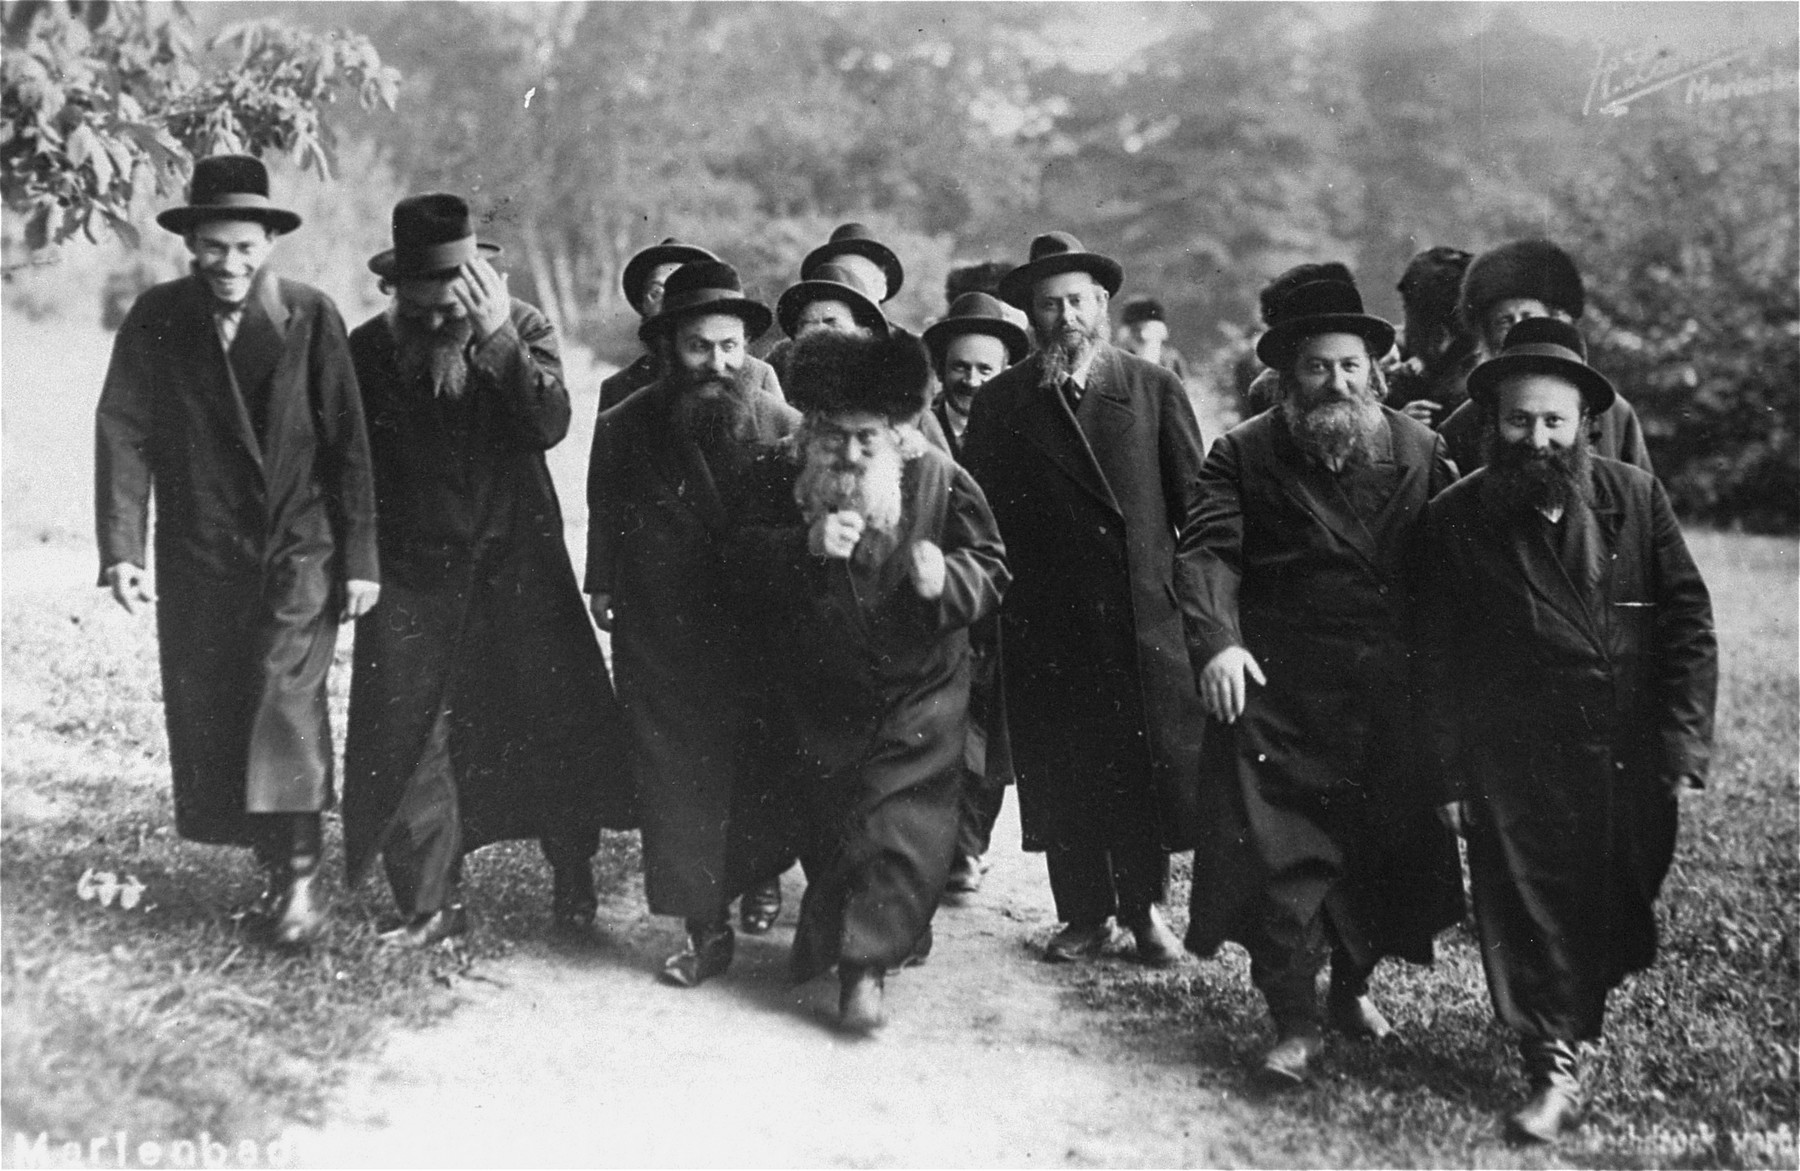 A Hasidic rabbi and his followers take the waters in Karlsbad.  In the center is Rabbi Avraham Mordechai Alter (the Gerer rebbe 1905-1948) and to his left is his son Rabbi Yisrael Alter and to his right are his other two sons Rabbi Mayer Alter and Rabbi Simcha Bina Alter.